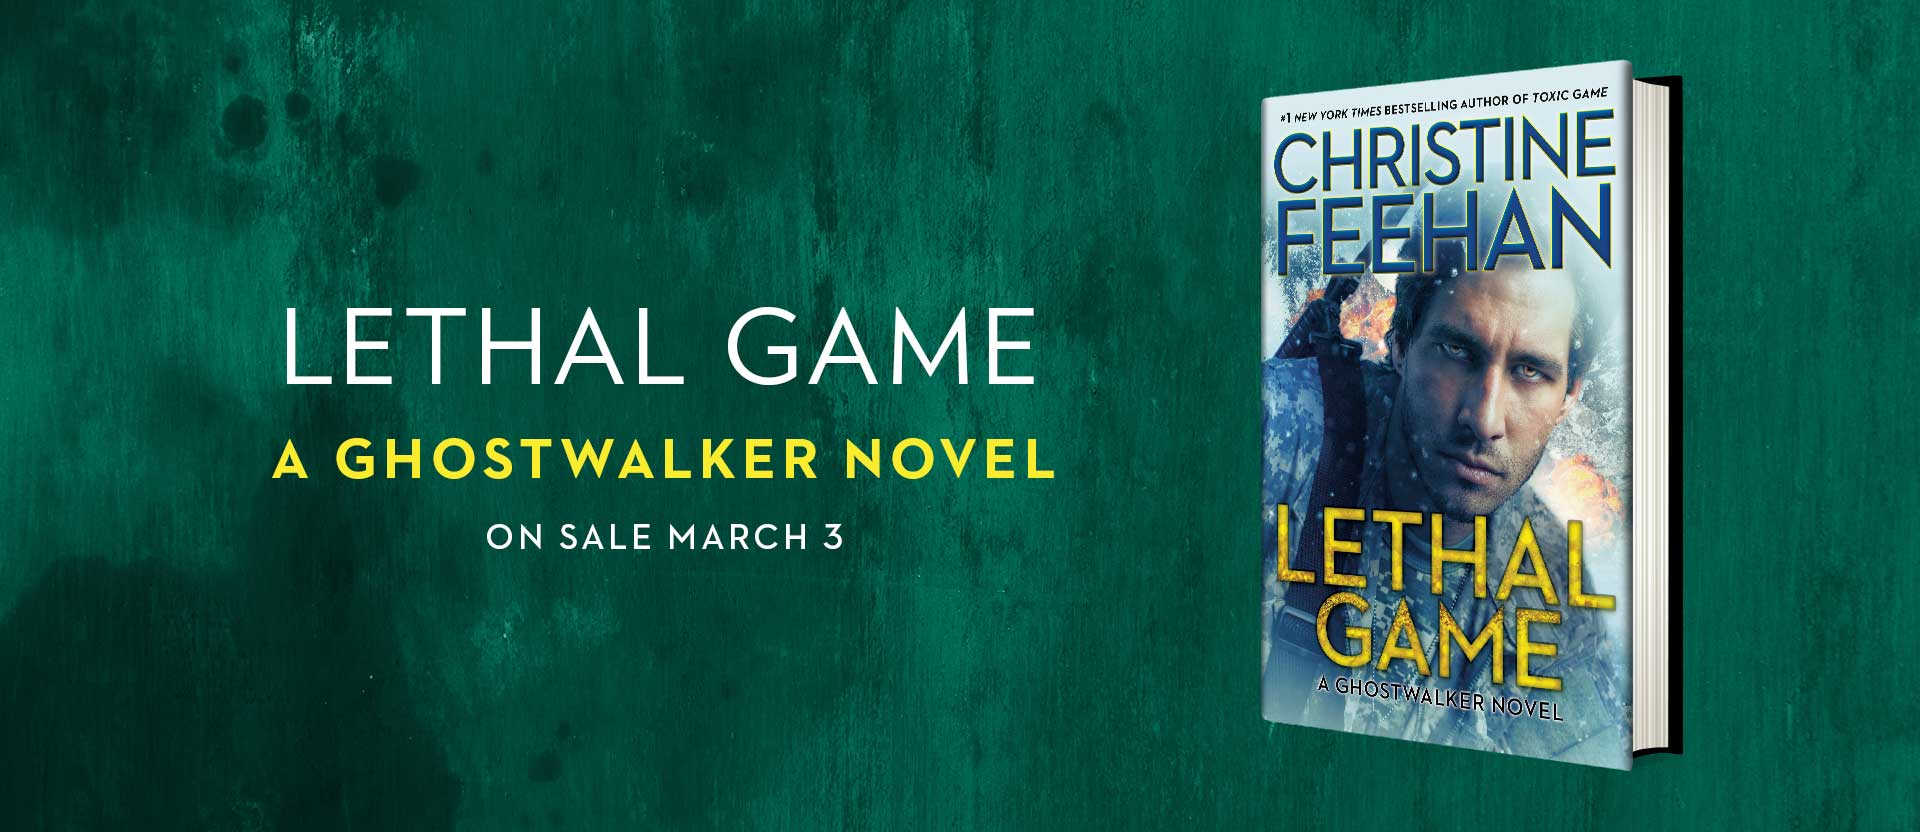 Lethal Game in hardcover!